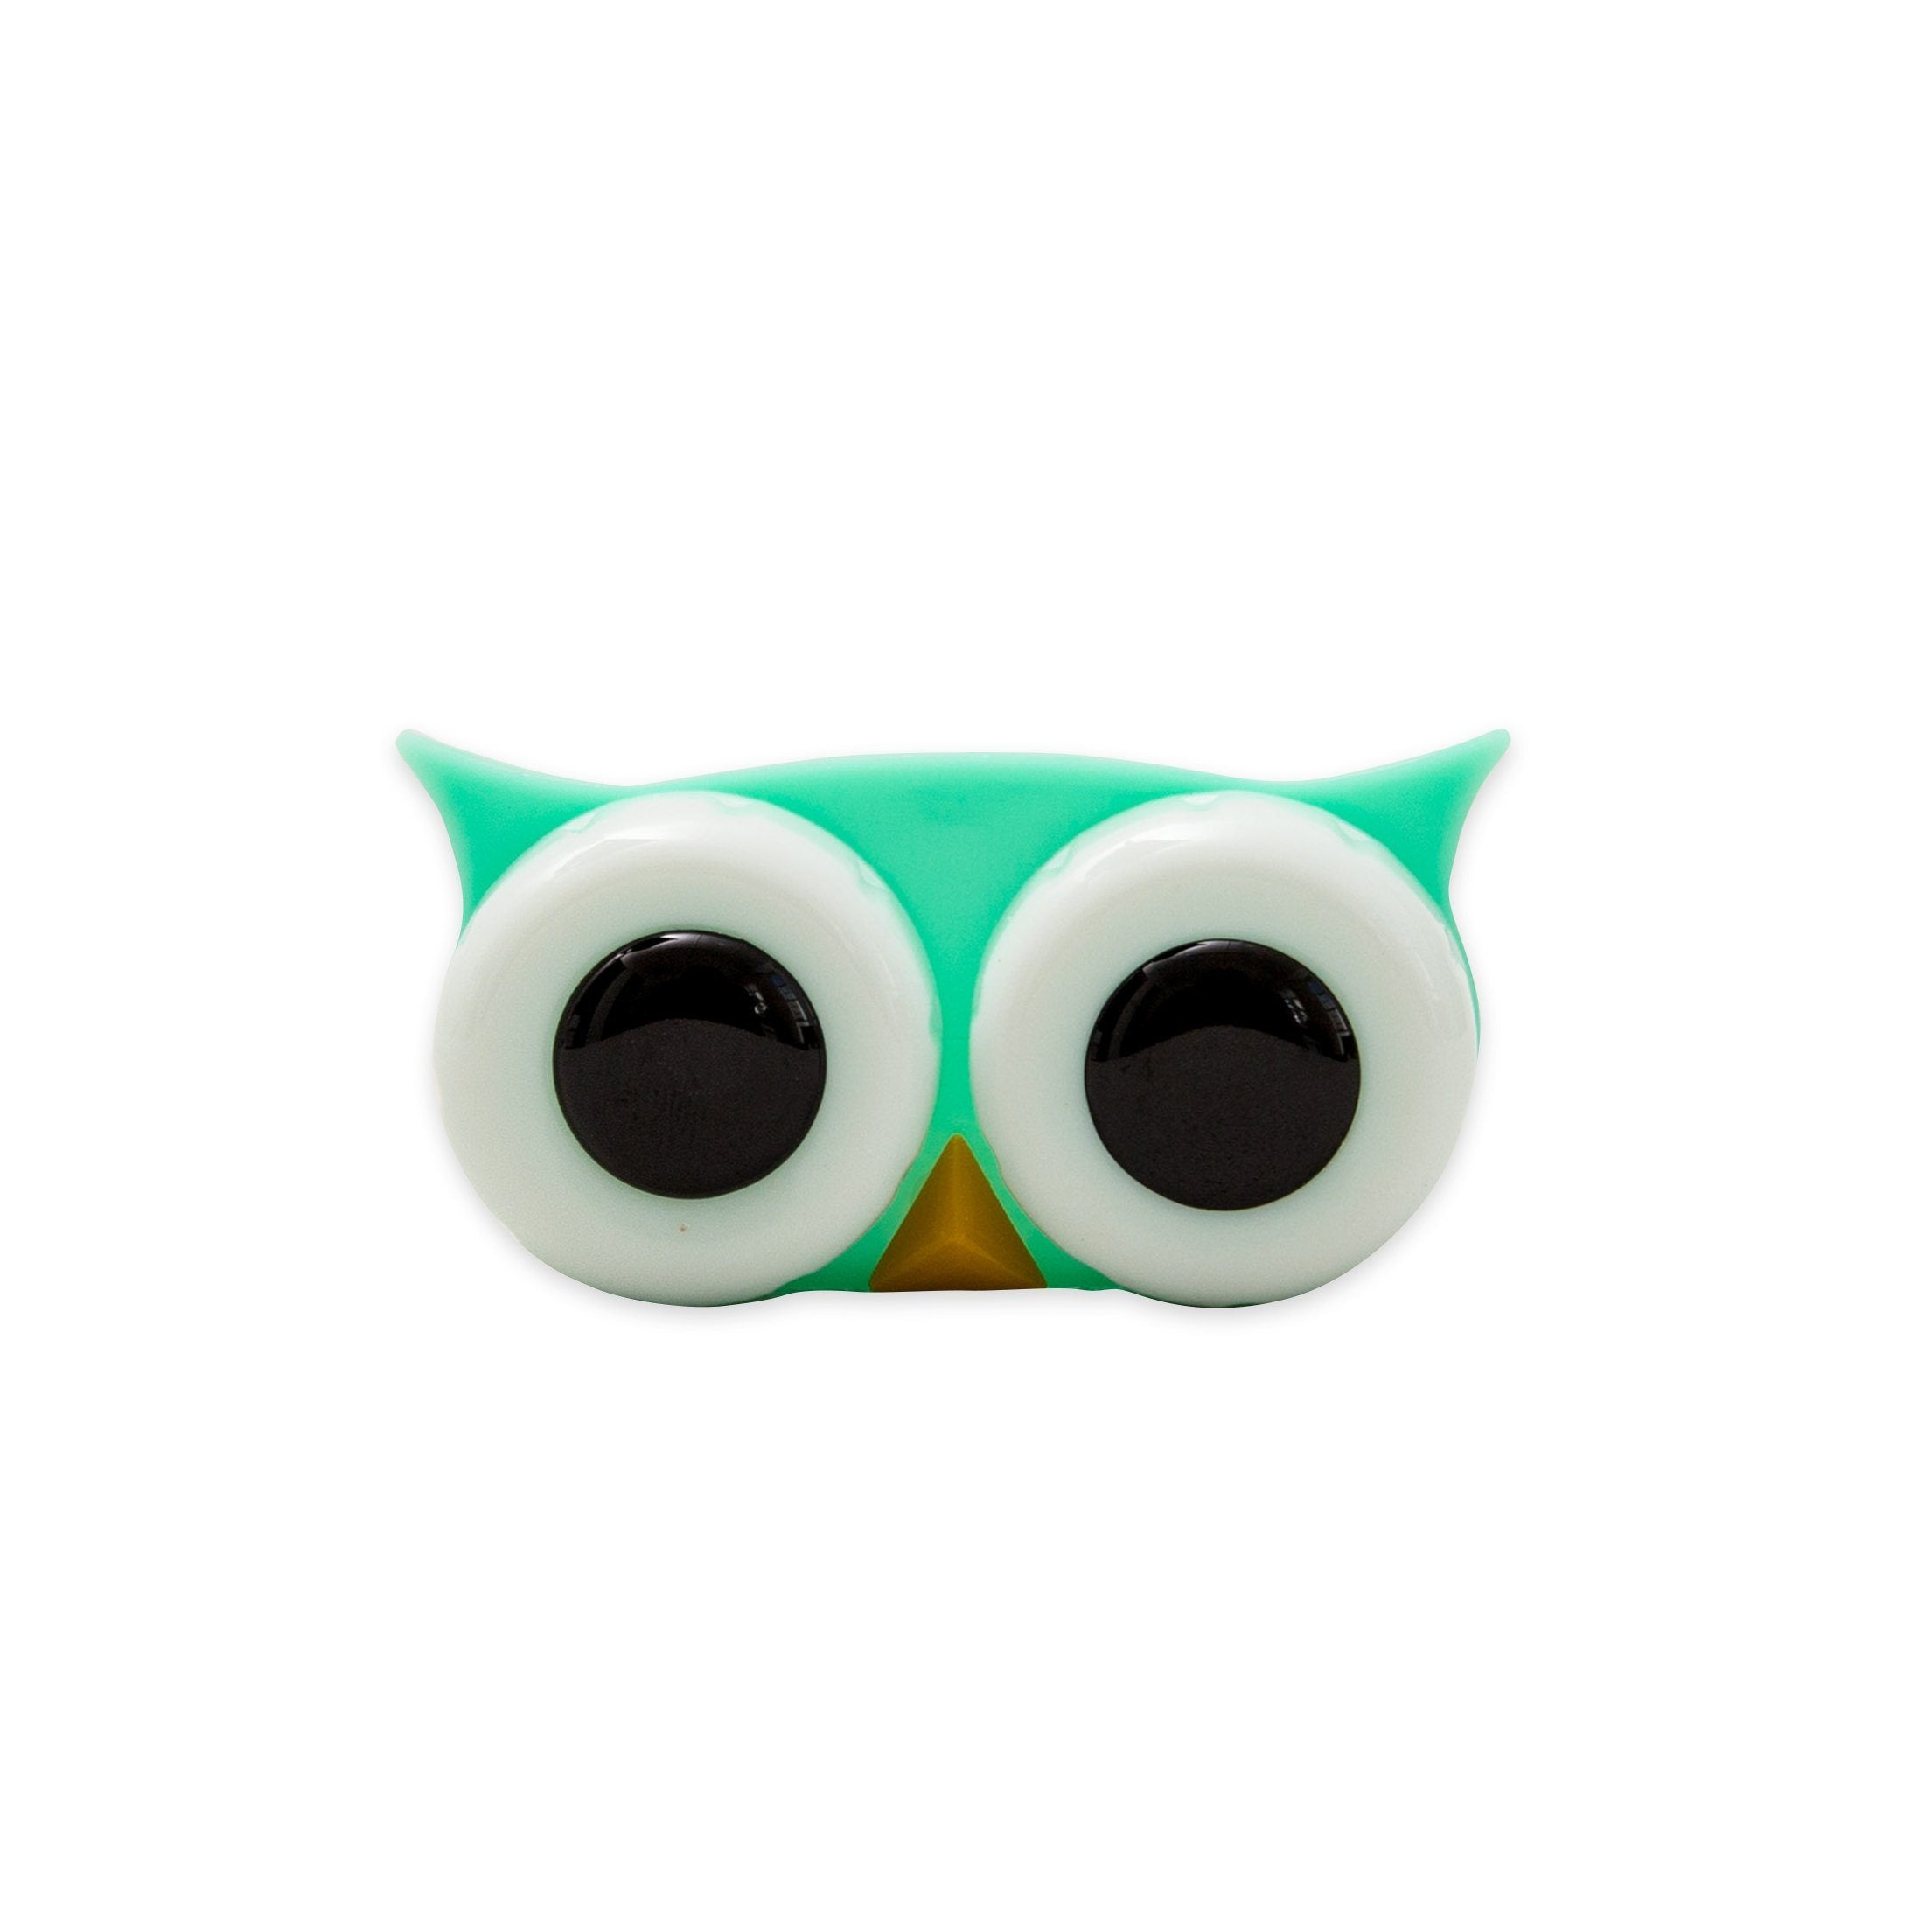 Cases - Mint Green Owl Contact Lens Case